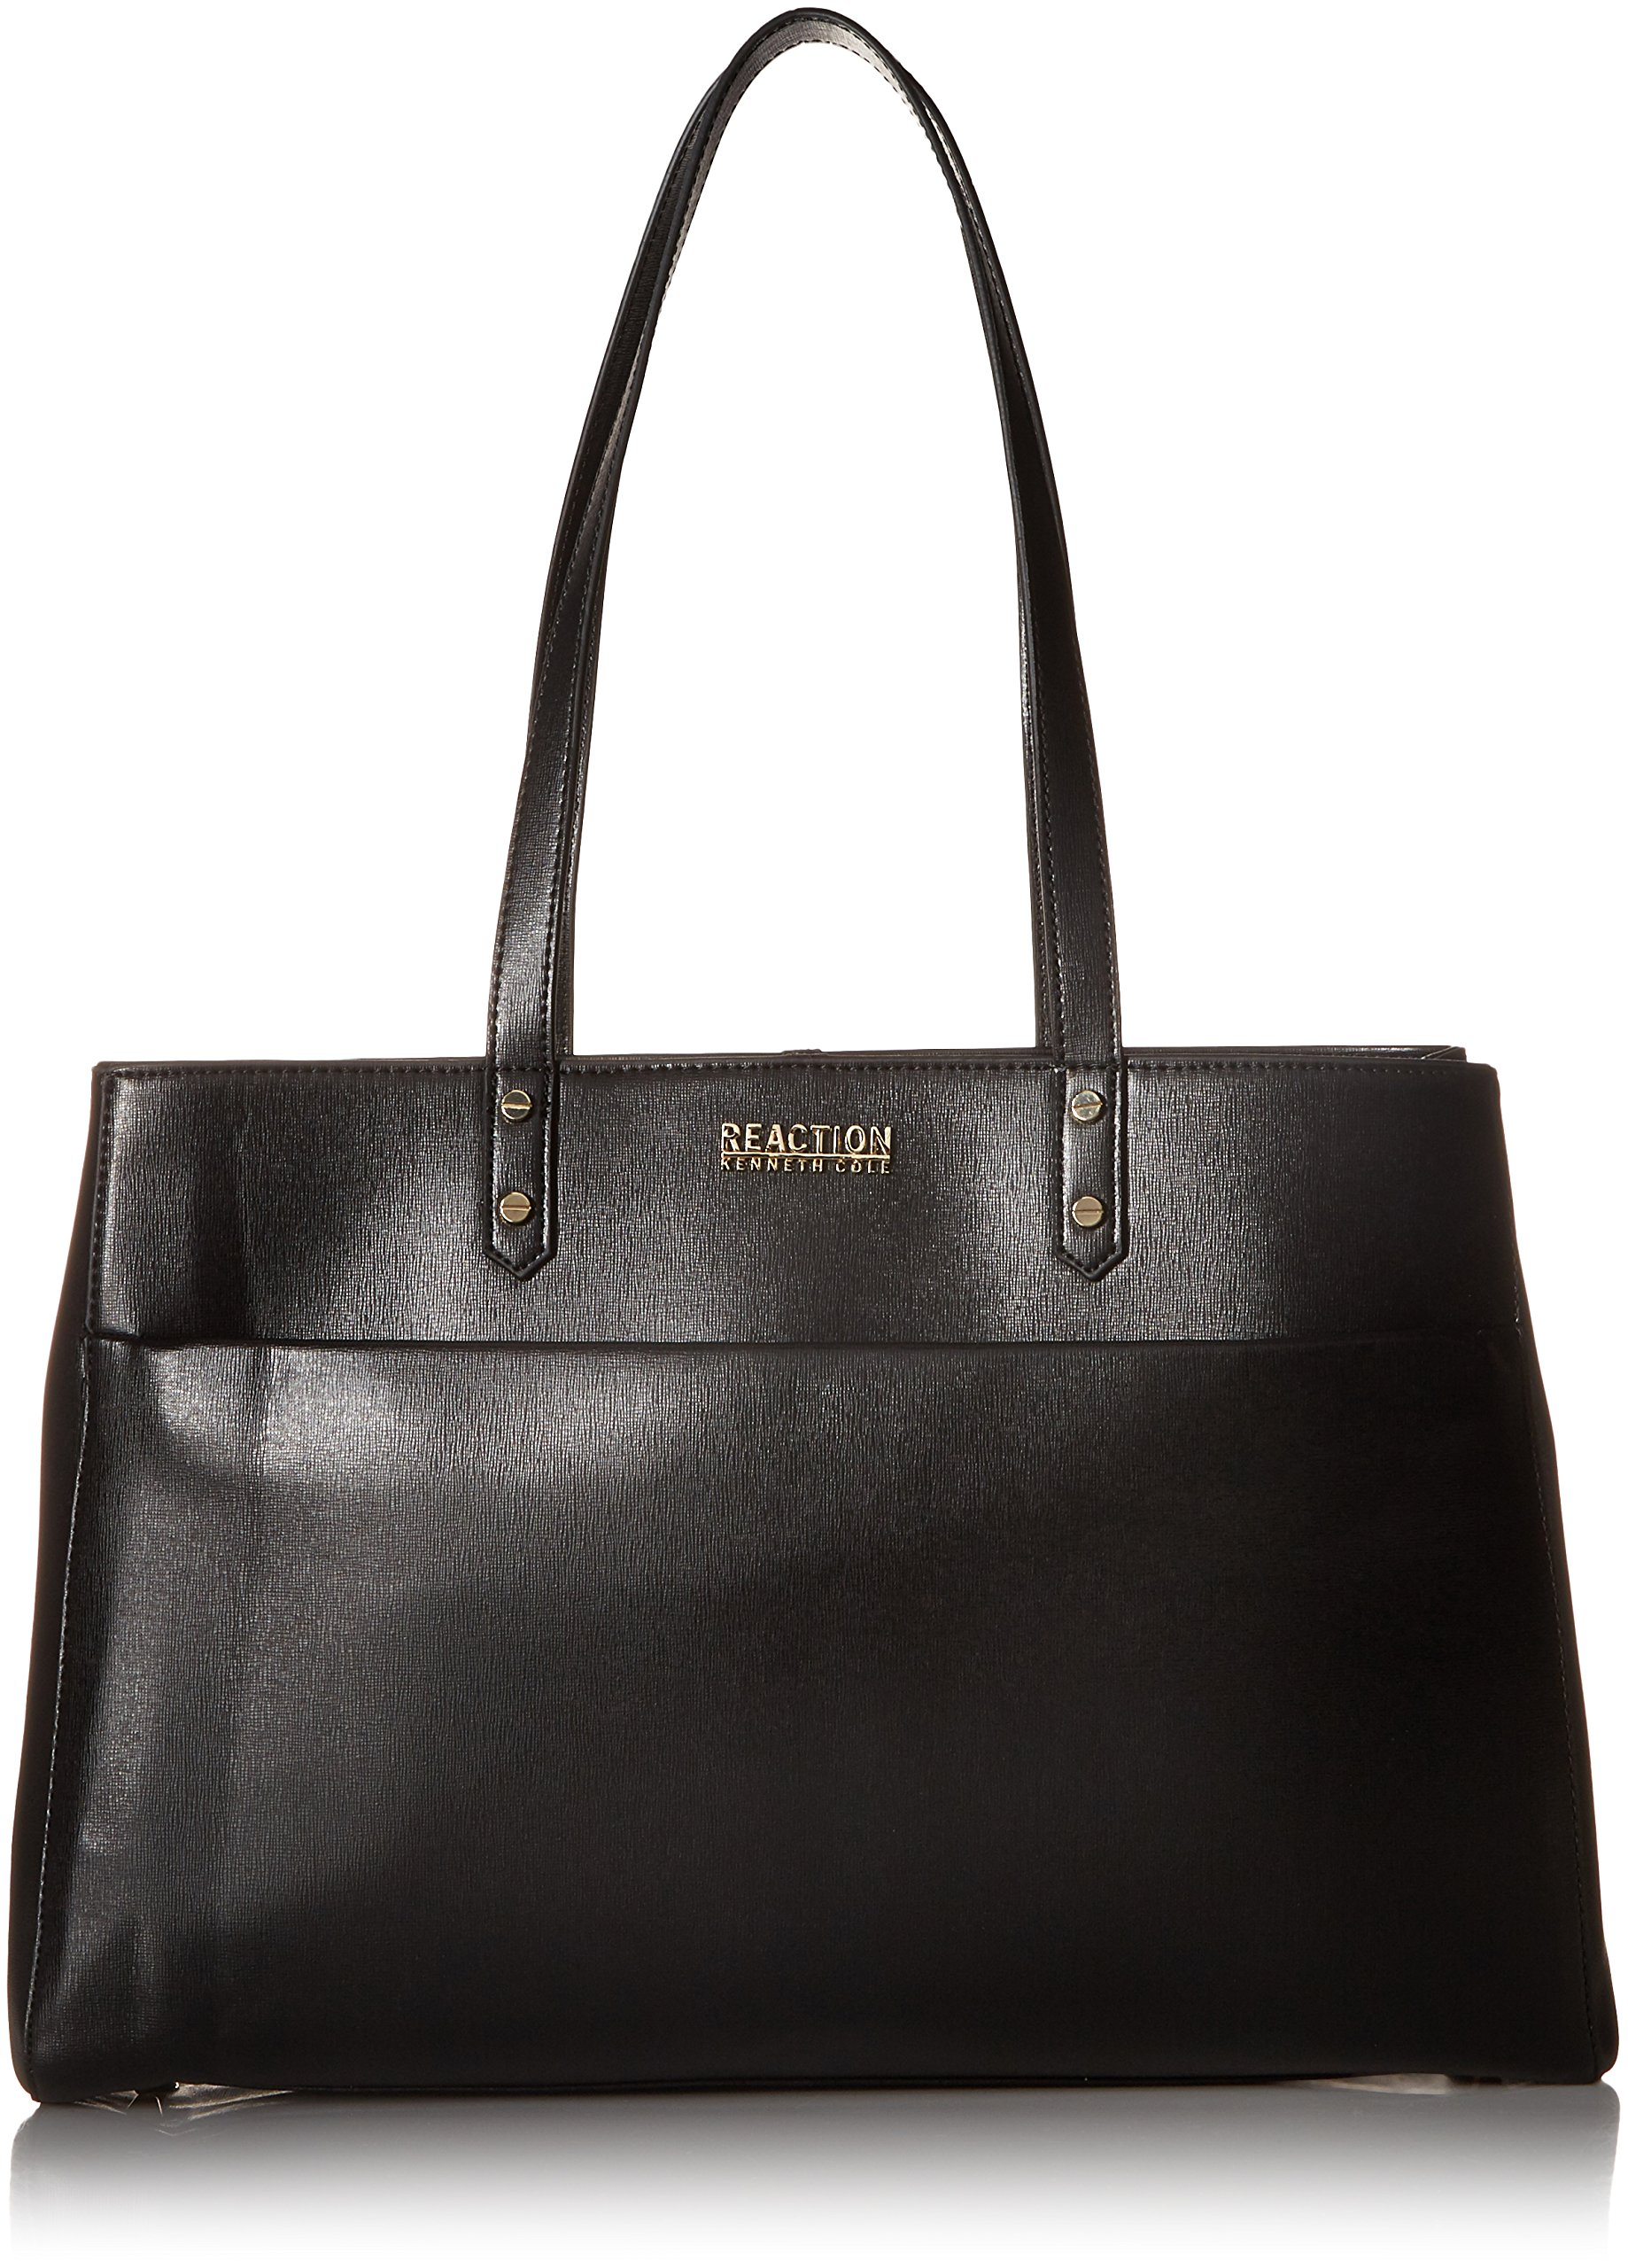 Kenneth Cole Reaction Downtown Darling Business Tote, Black